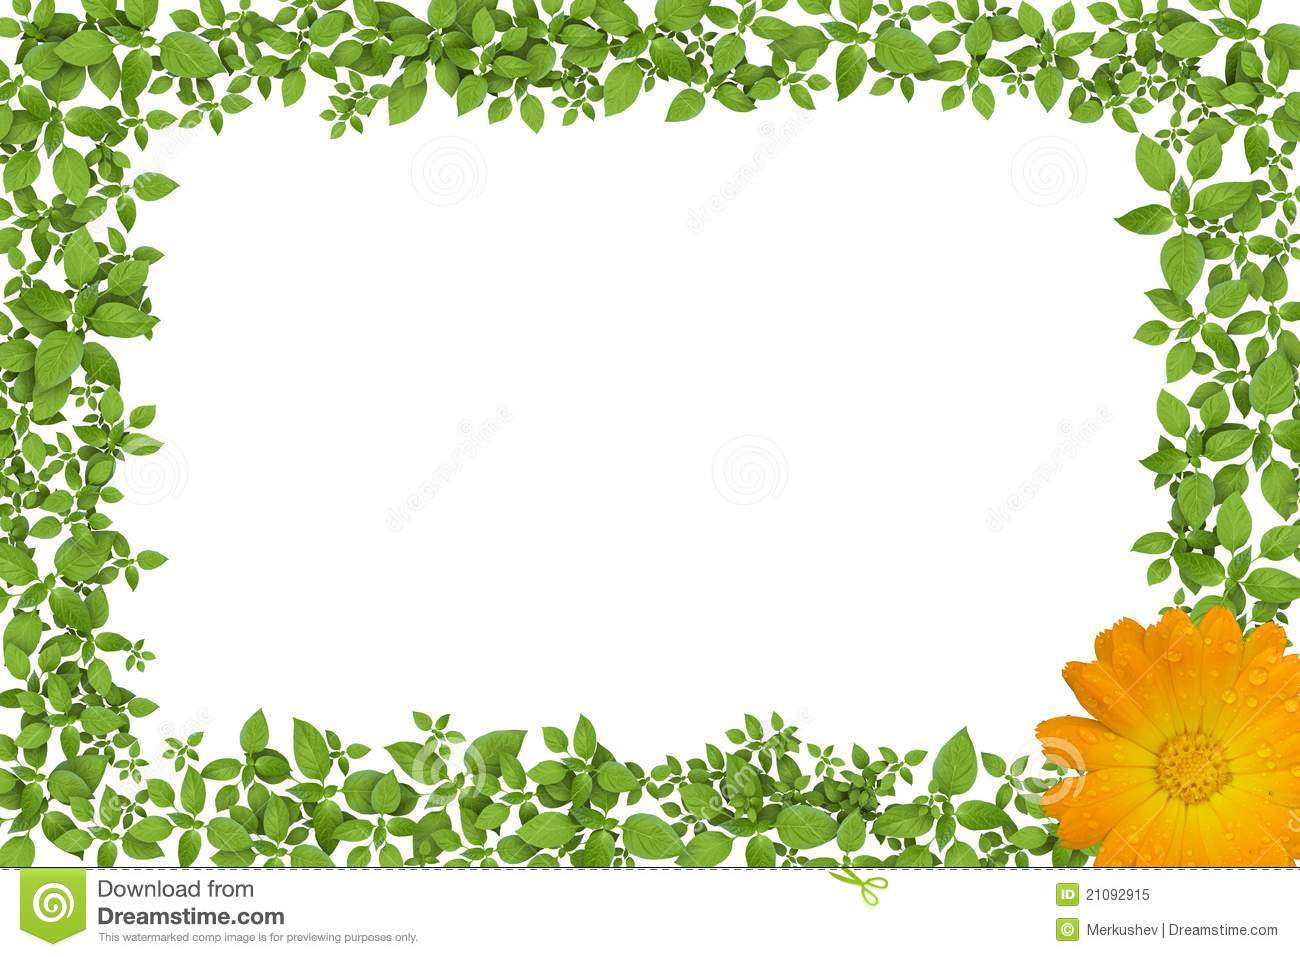 Green Plant Frame With Yellow Flowers Royalty Free Stock